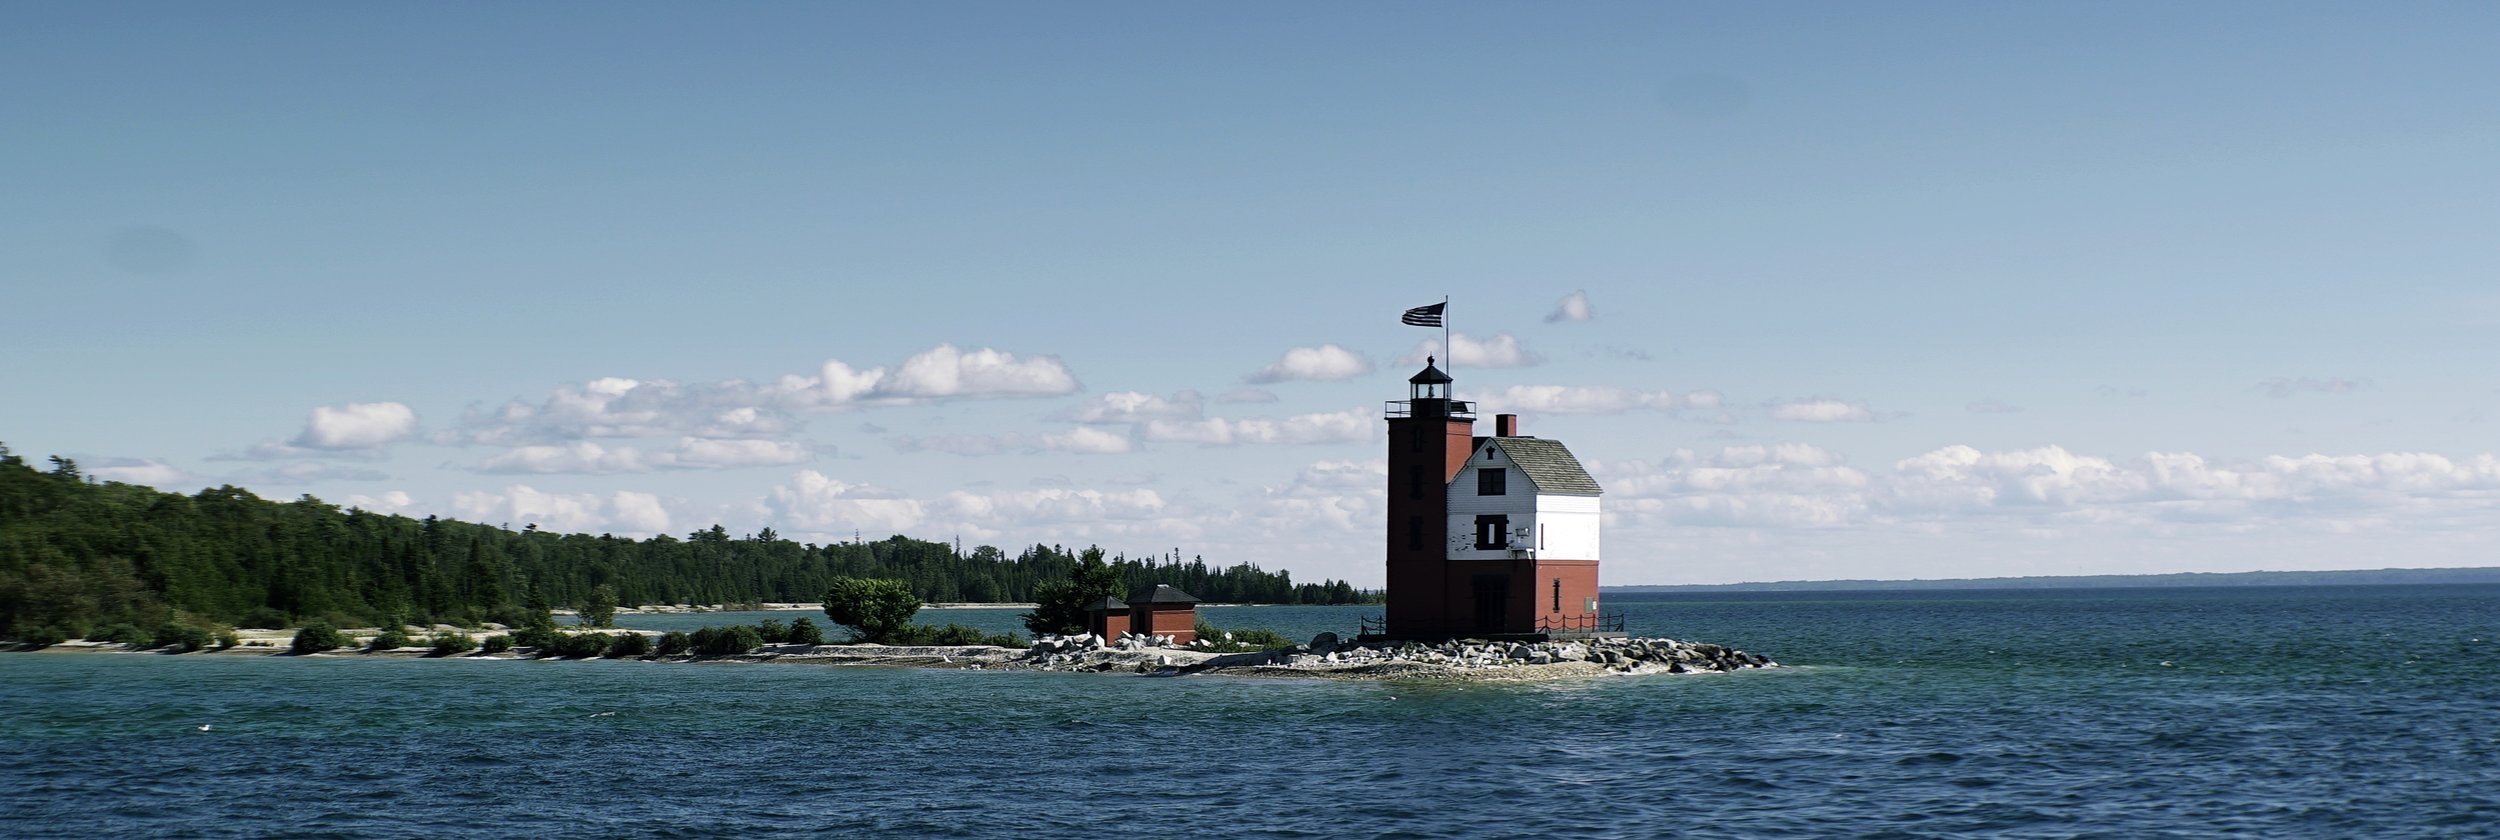 Lomo 100mm anamorphic lens | Round Island Lighthouse - Mackinac Island, MI. This lighthouse was featured throughout the film Somewhere in Time. Click this link   HERE   for more information about this lighthouse. I really think I overdid it with the saturation on this pic though. Photo by: Keith Nickoson